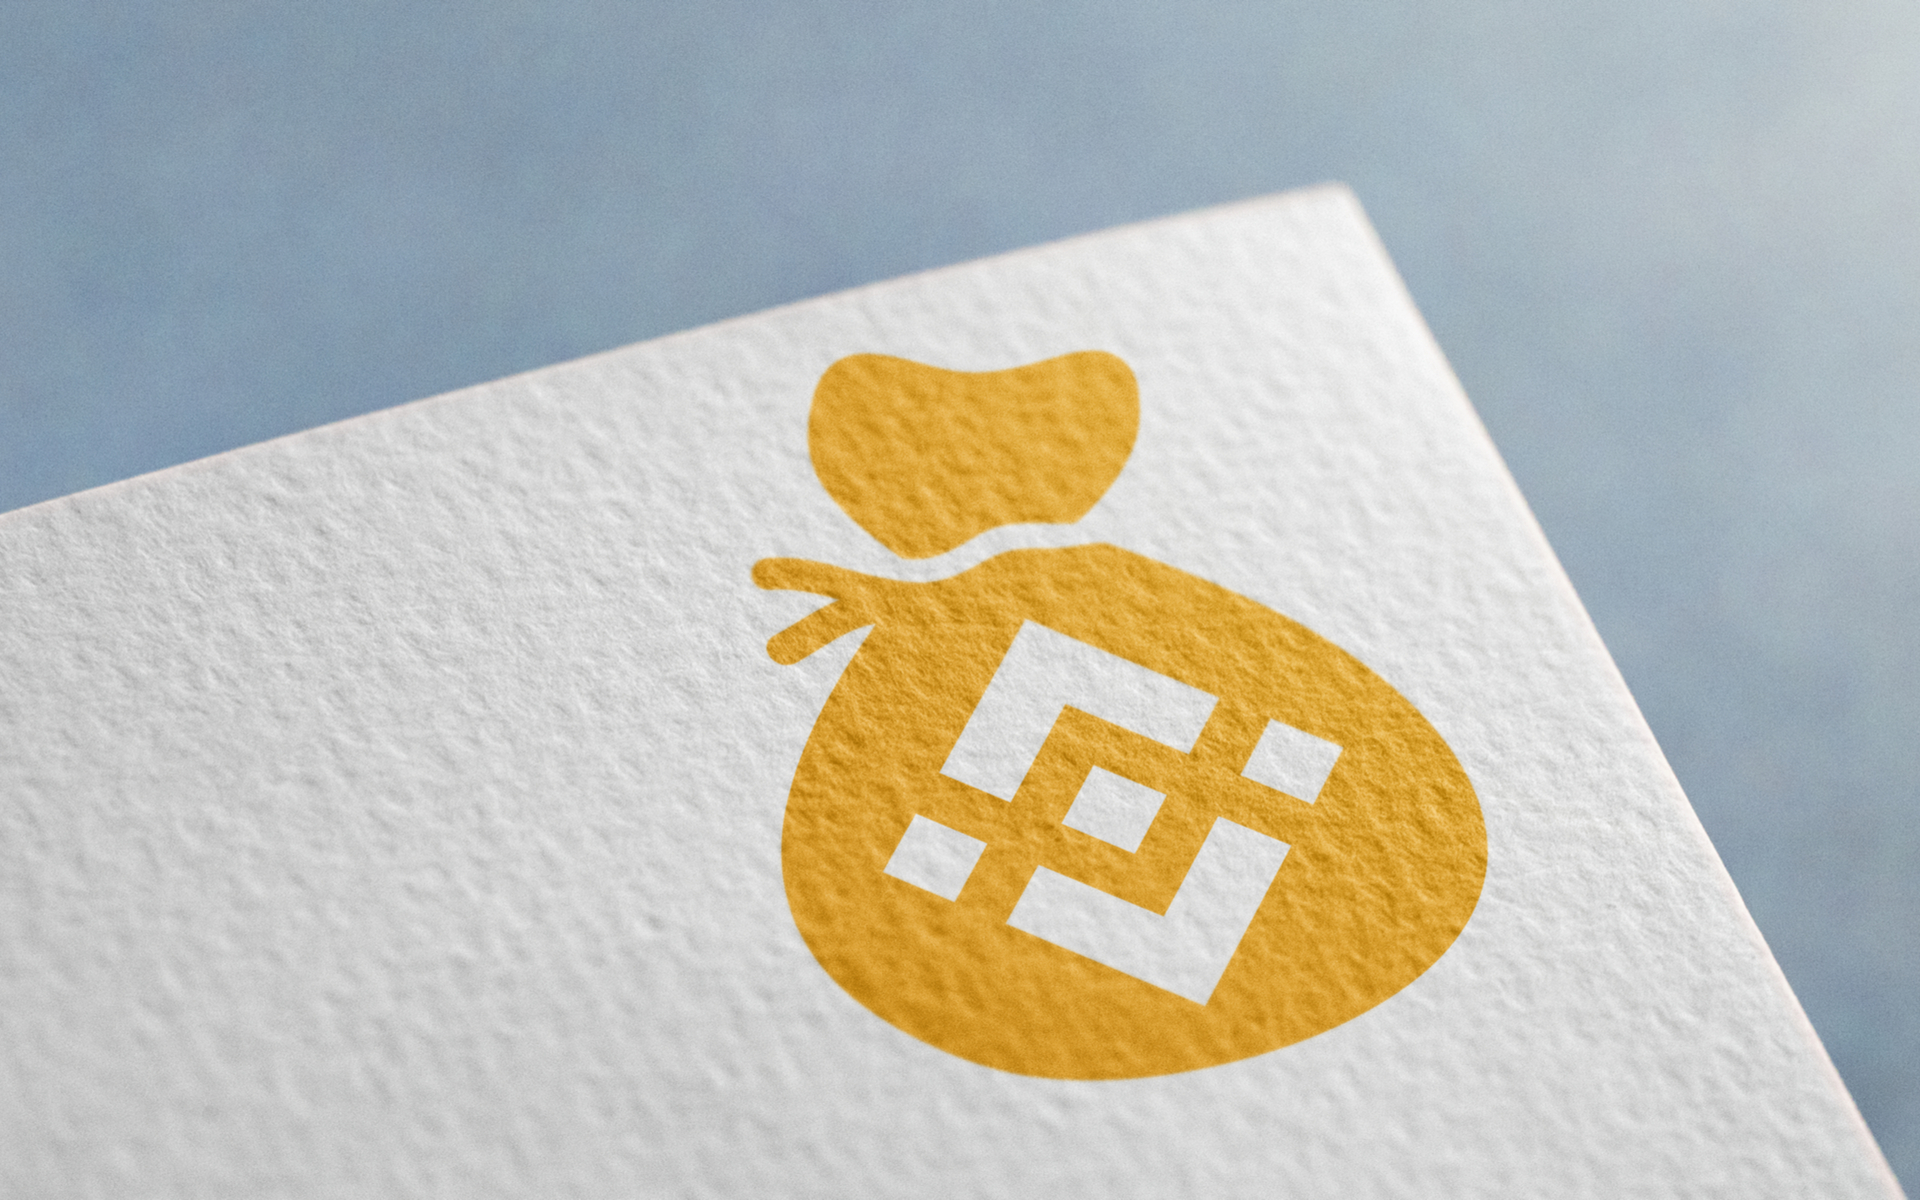 Binance In-House Cryptocurrency Launches Have Averaged 270% Gains